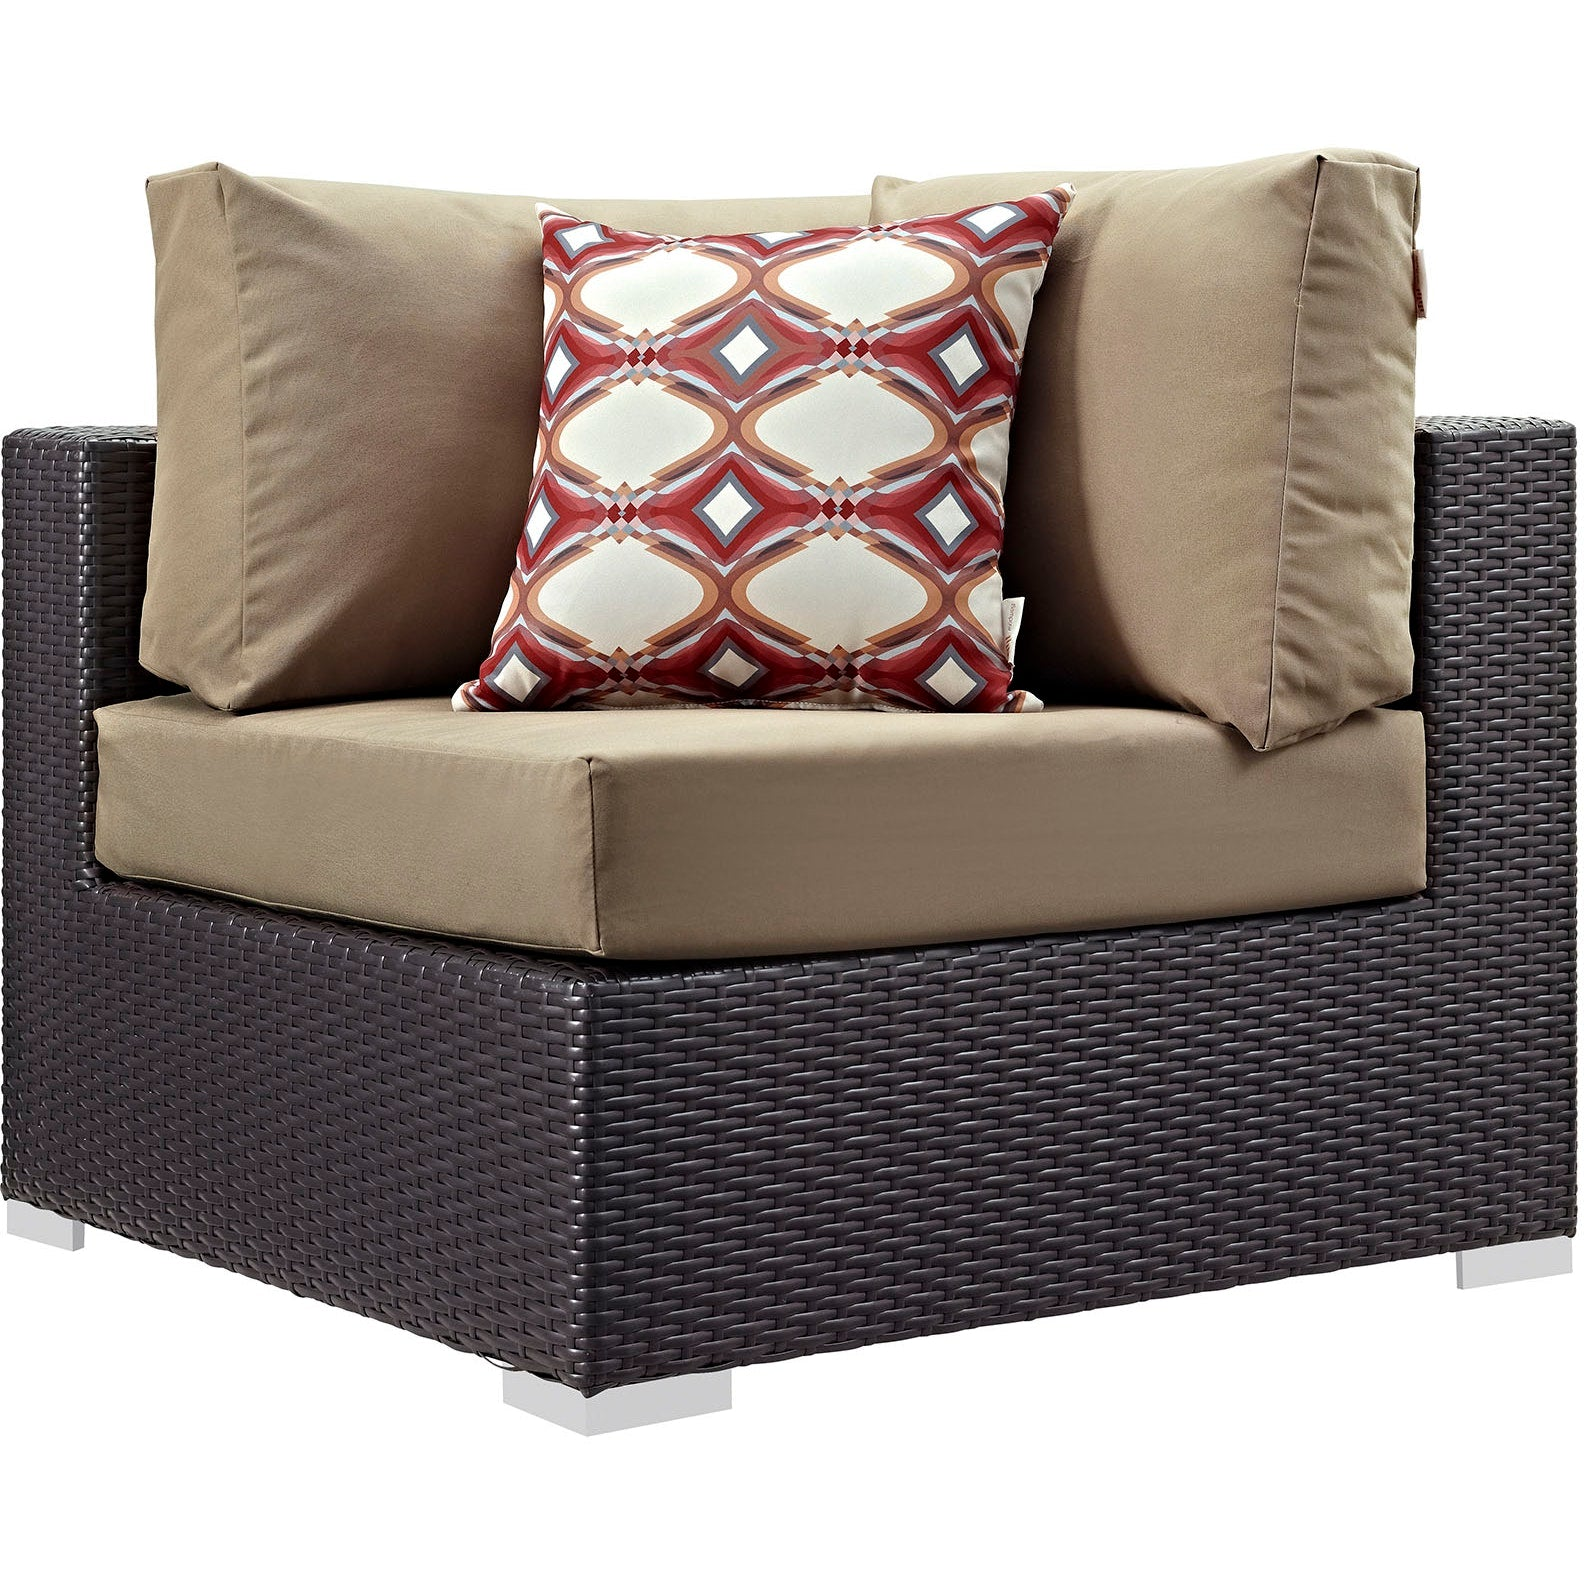 Convene 7 Piece Outdoor Patio Sectional Set - Espresso Mocha